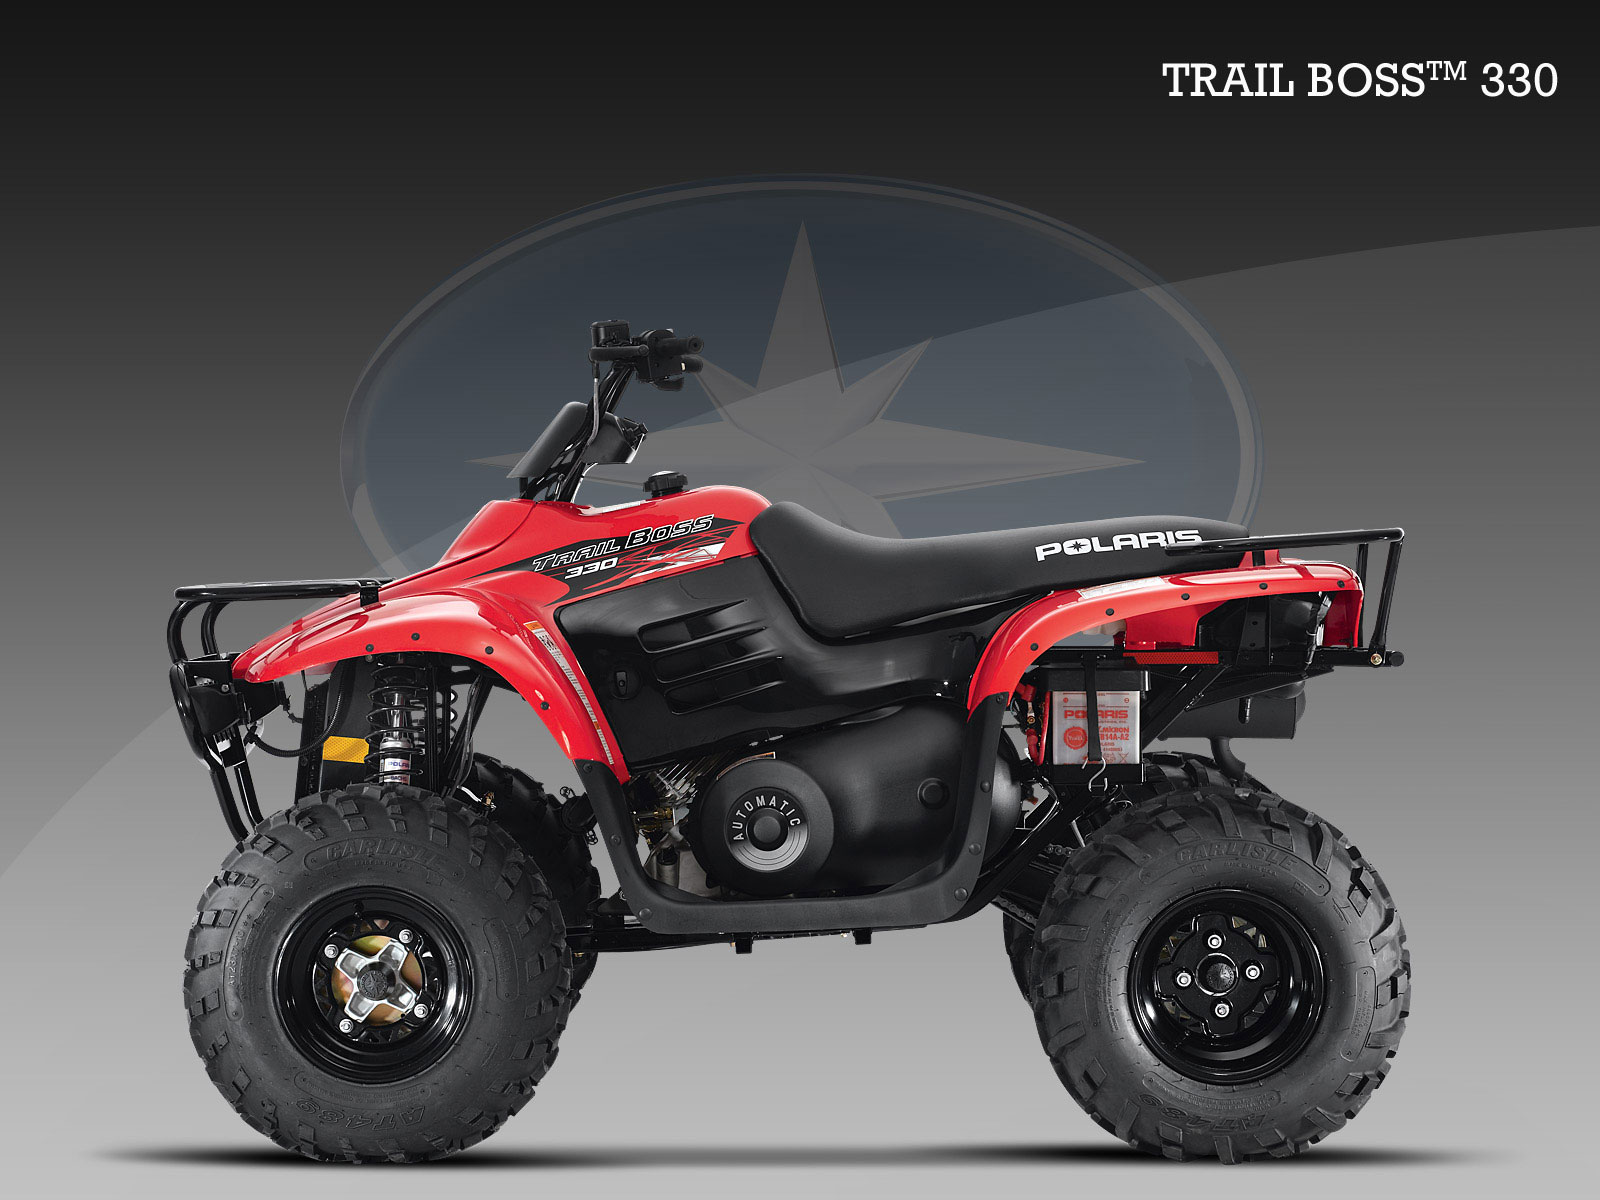 Polaris Trail Boss 330 2008 images #176387